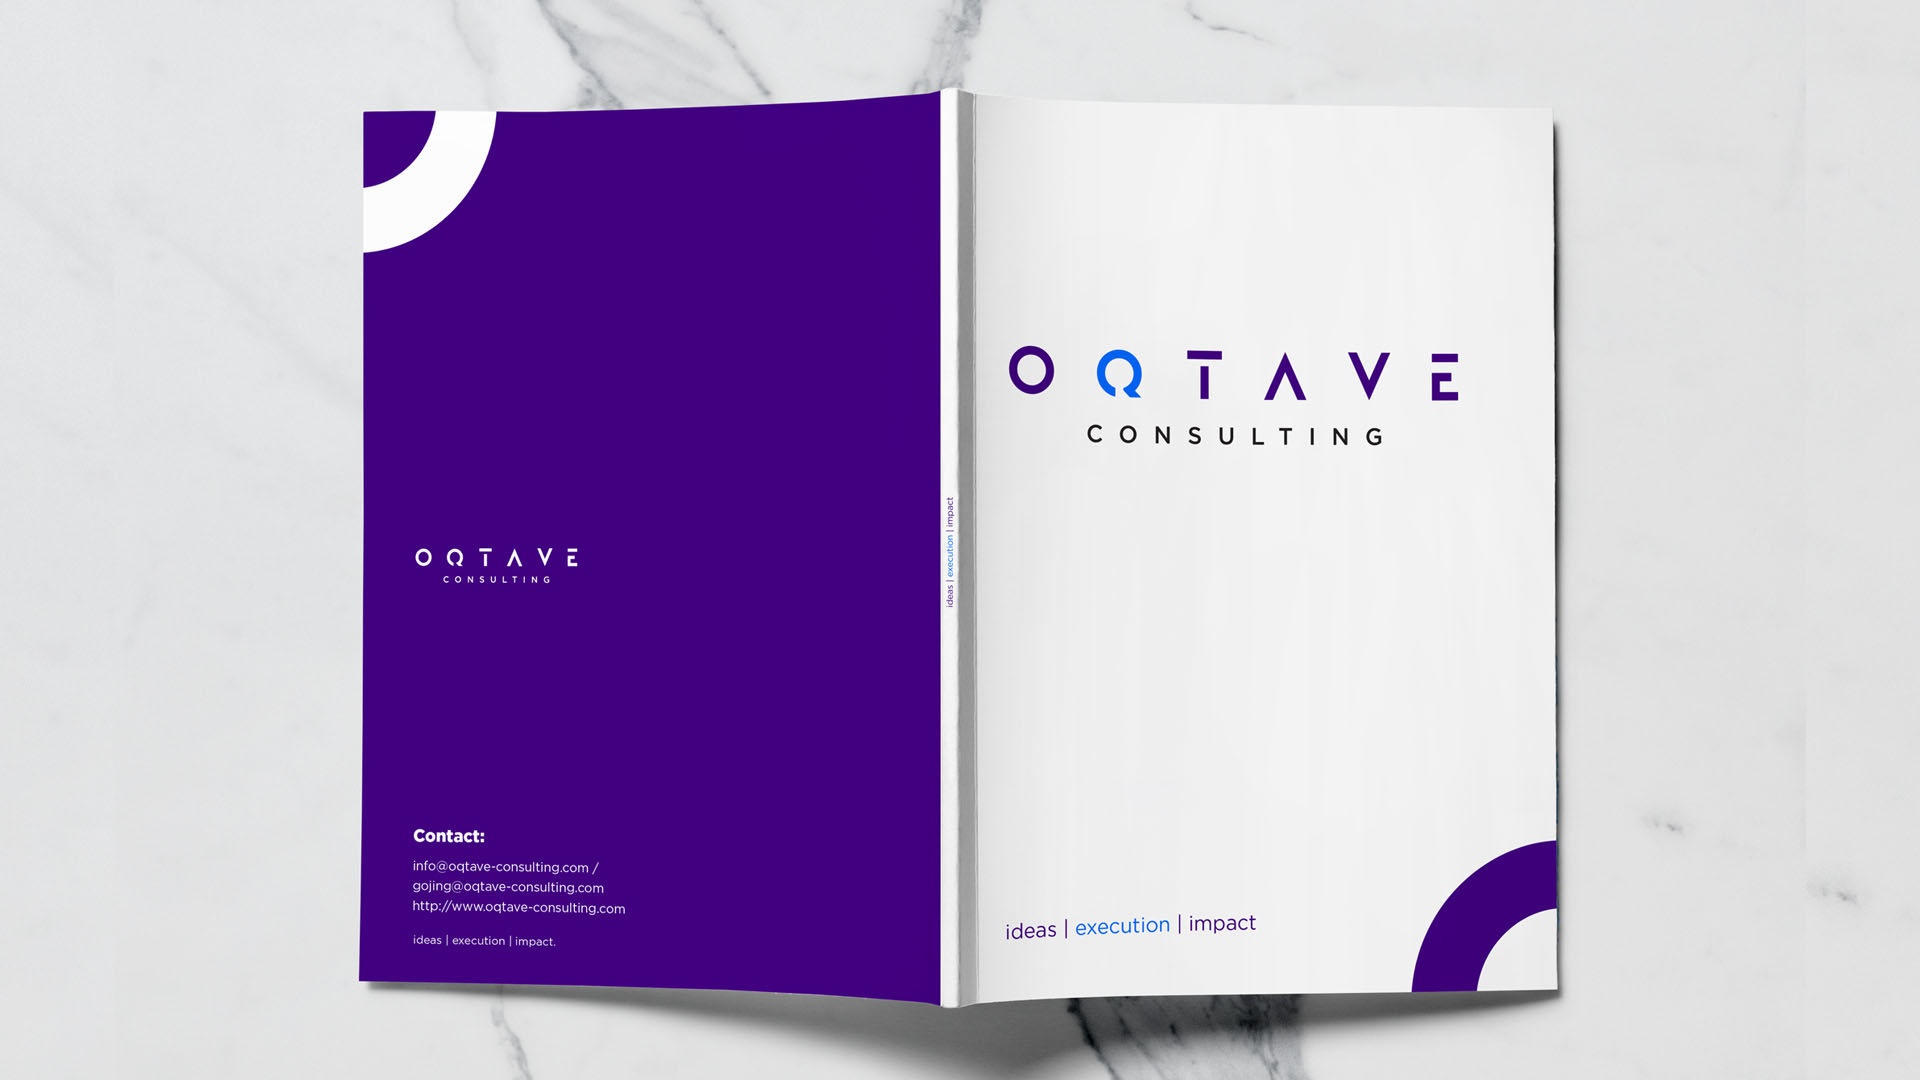 Oqtave Consulting Profile Deigned by Jabari Creative Studios